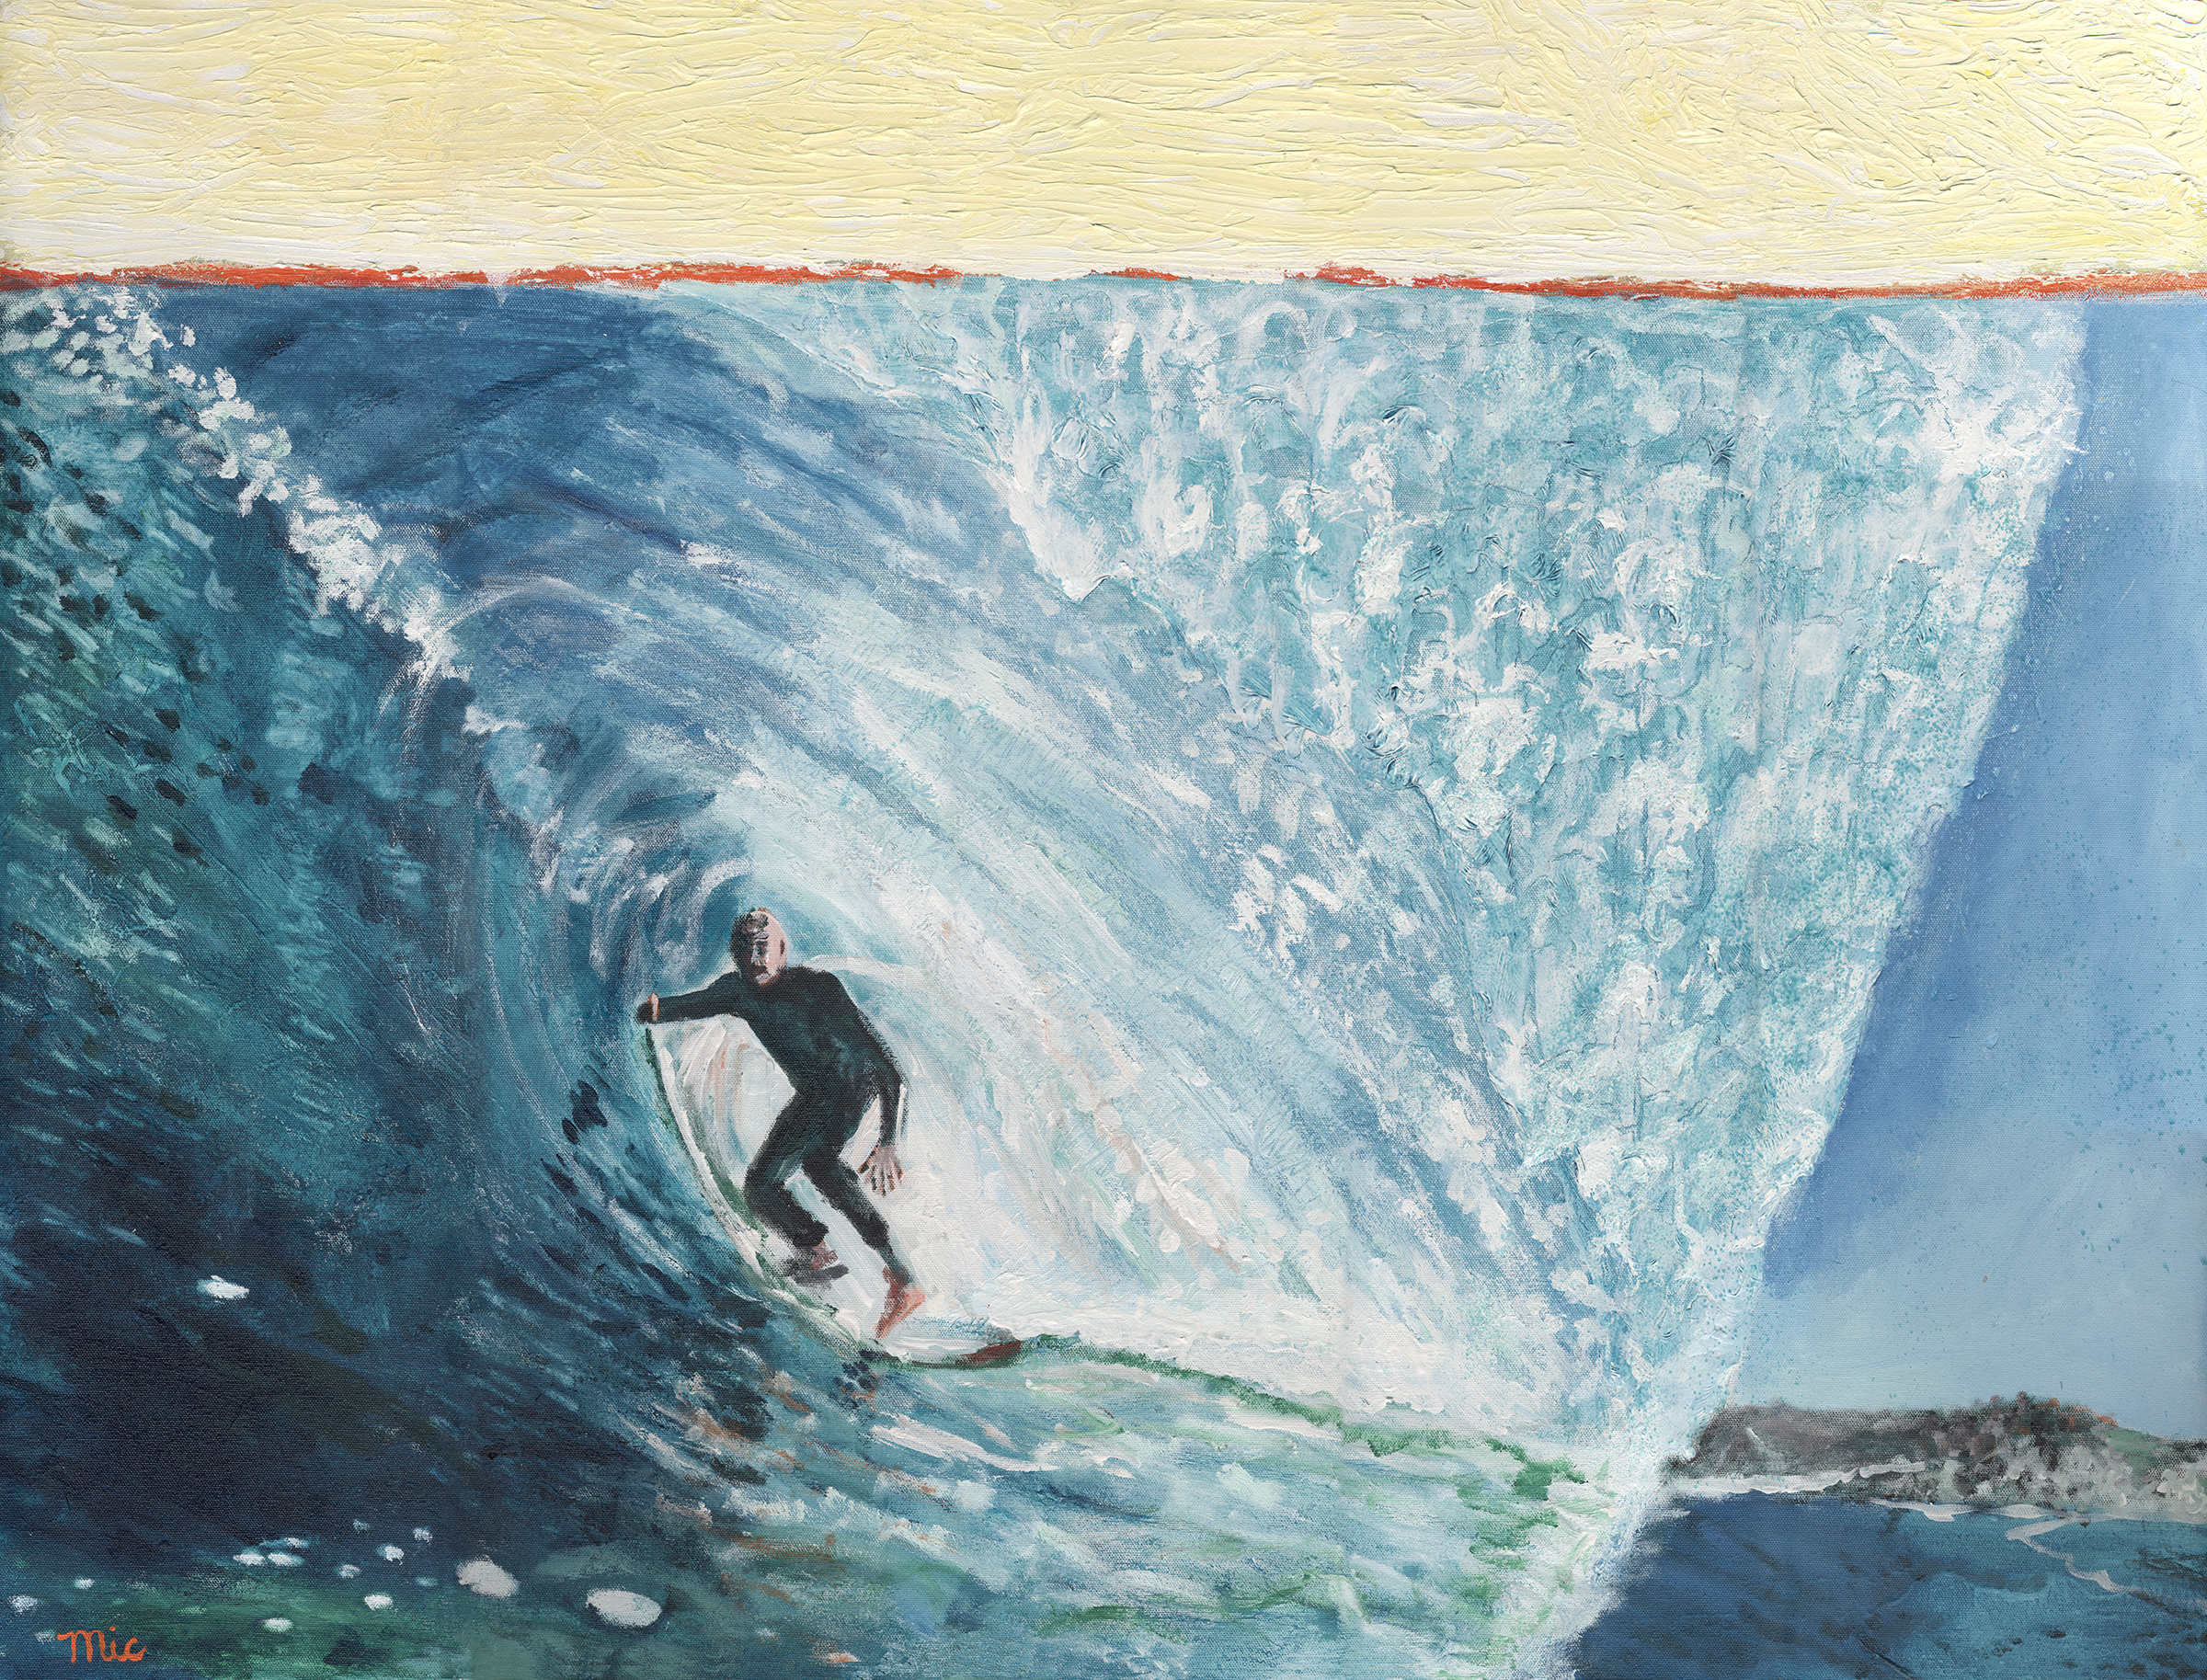 Abstract Surfing - Acrylic on Canvas Private collection Mark StankusGiclee Limited Edition and canvas prints are available. Please visit the prints gallery.